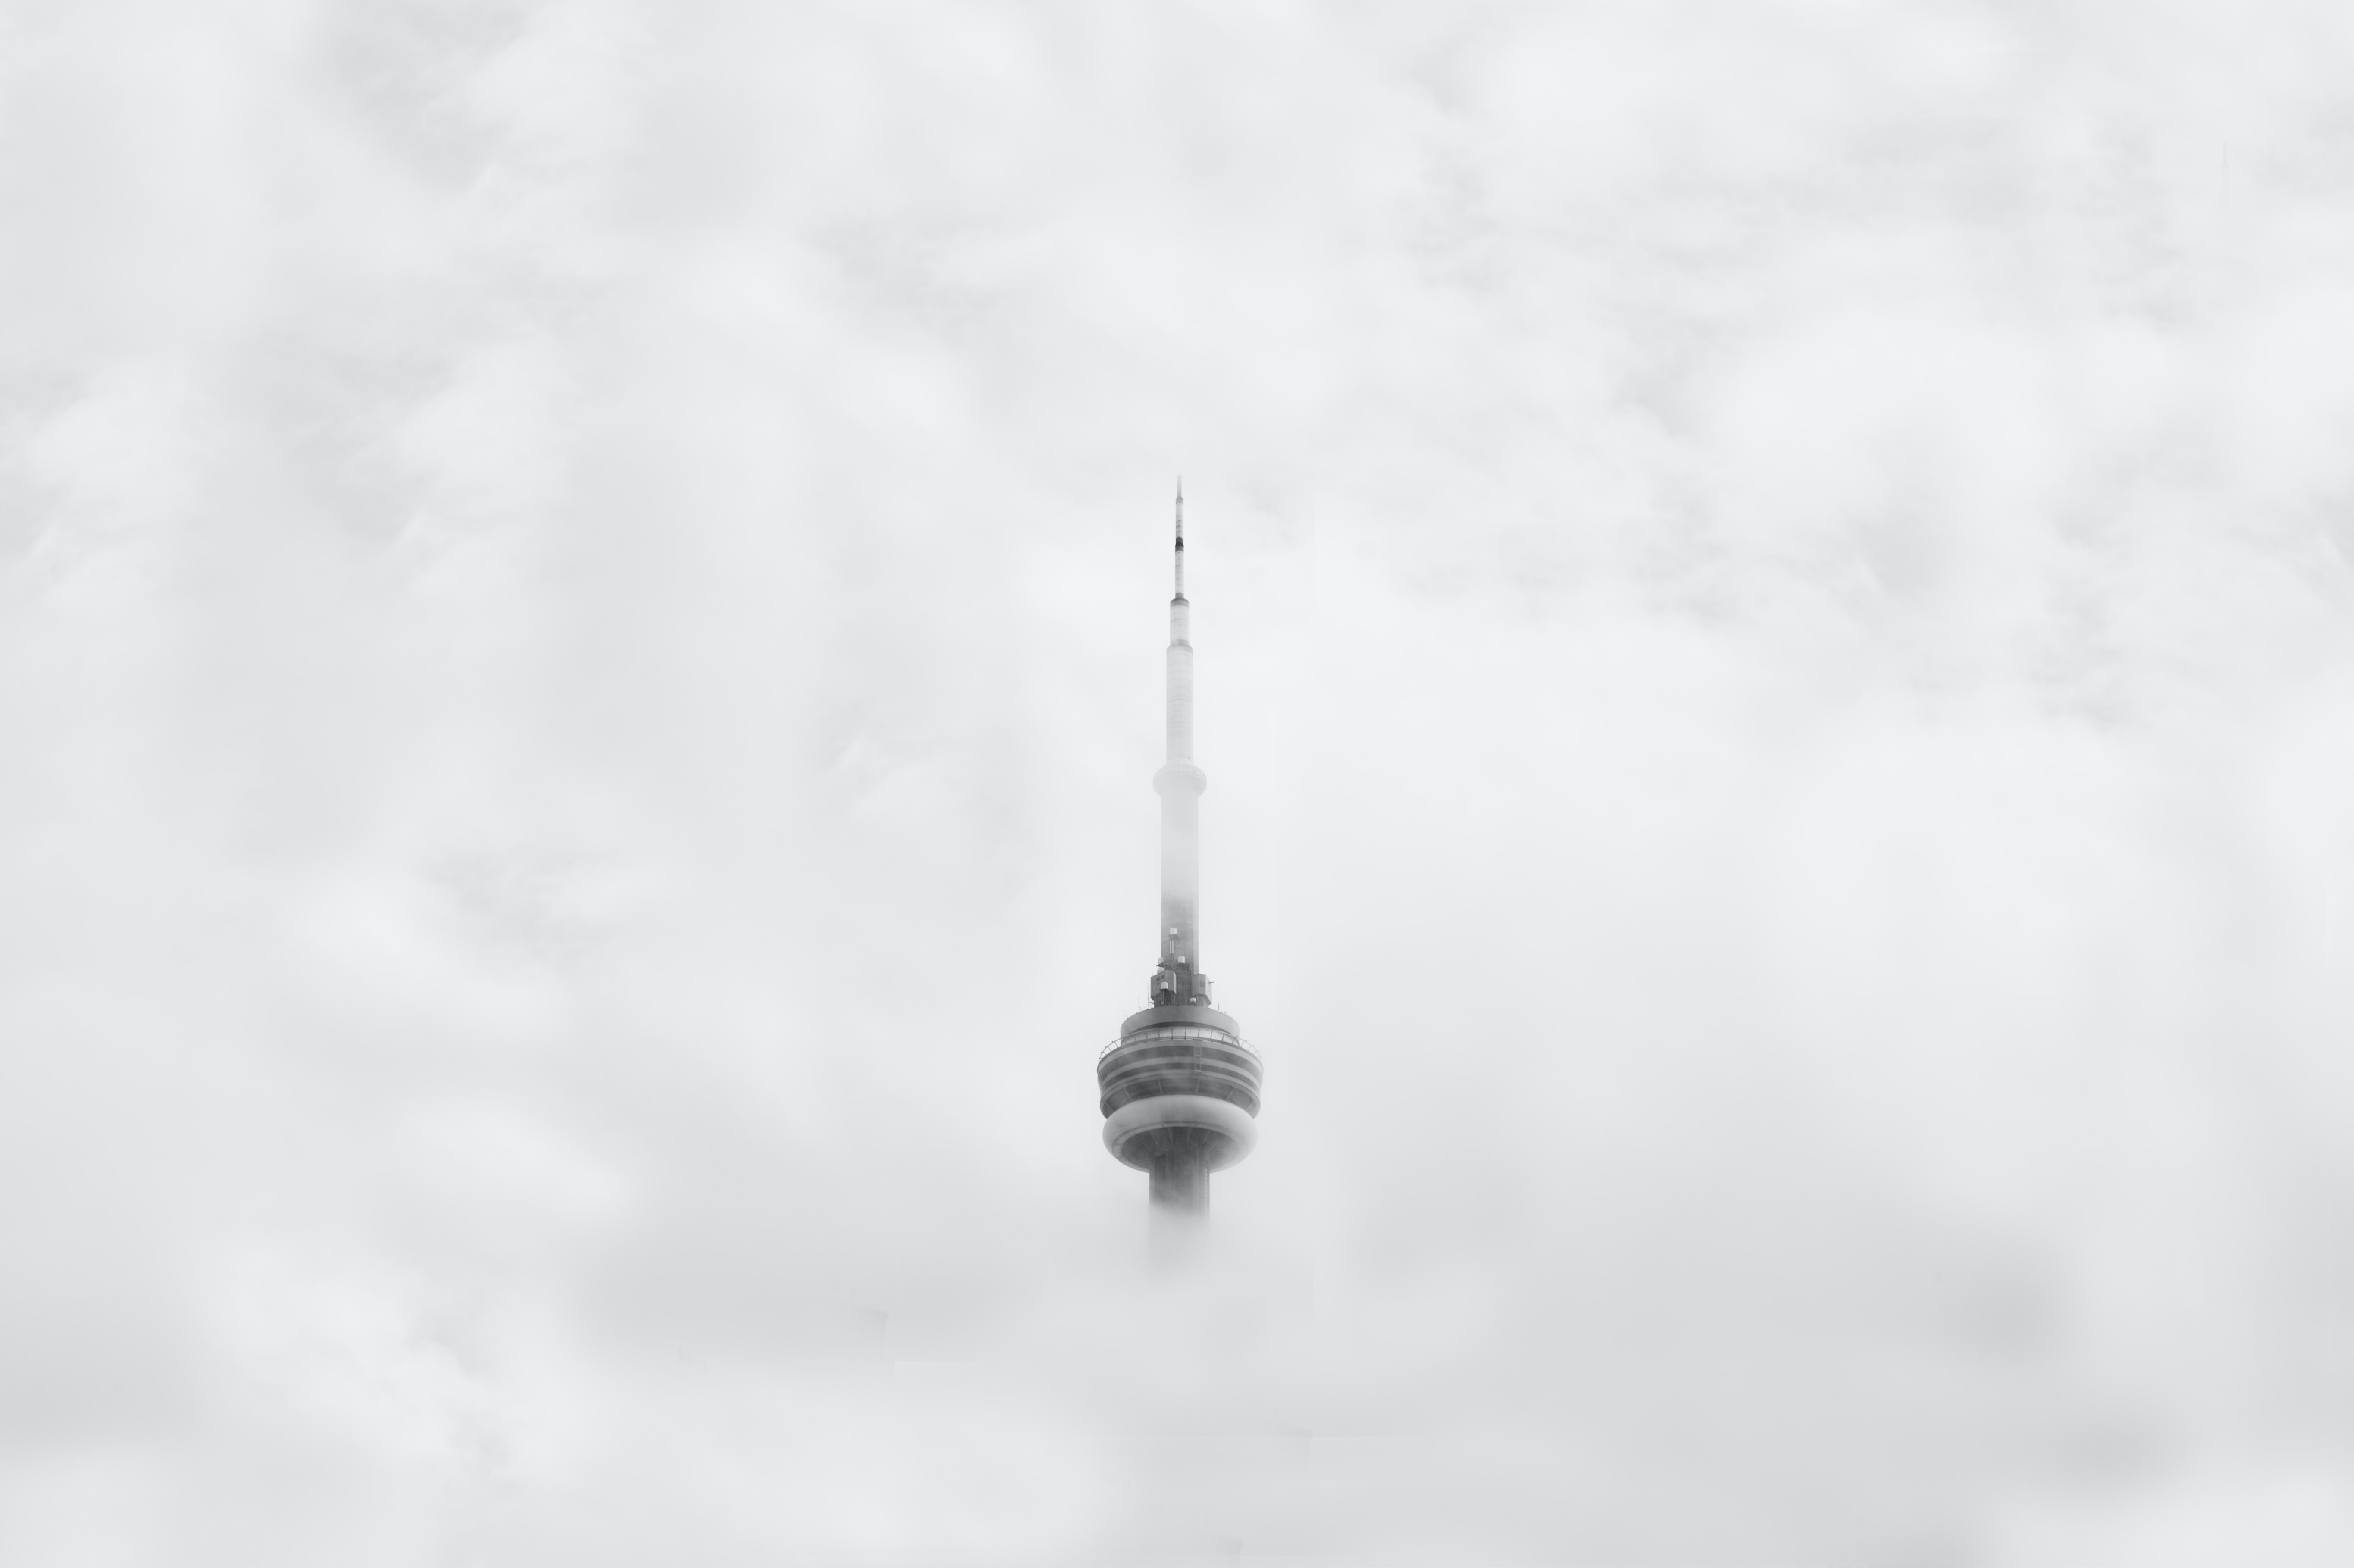 The CN Tower in Toronto shrouded in thick clouds